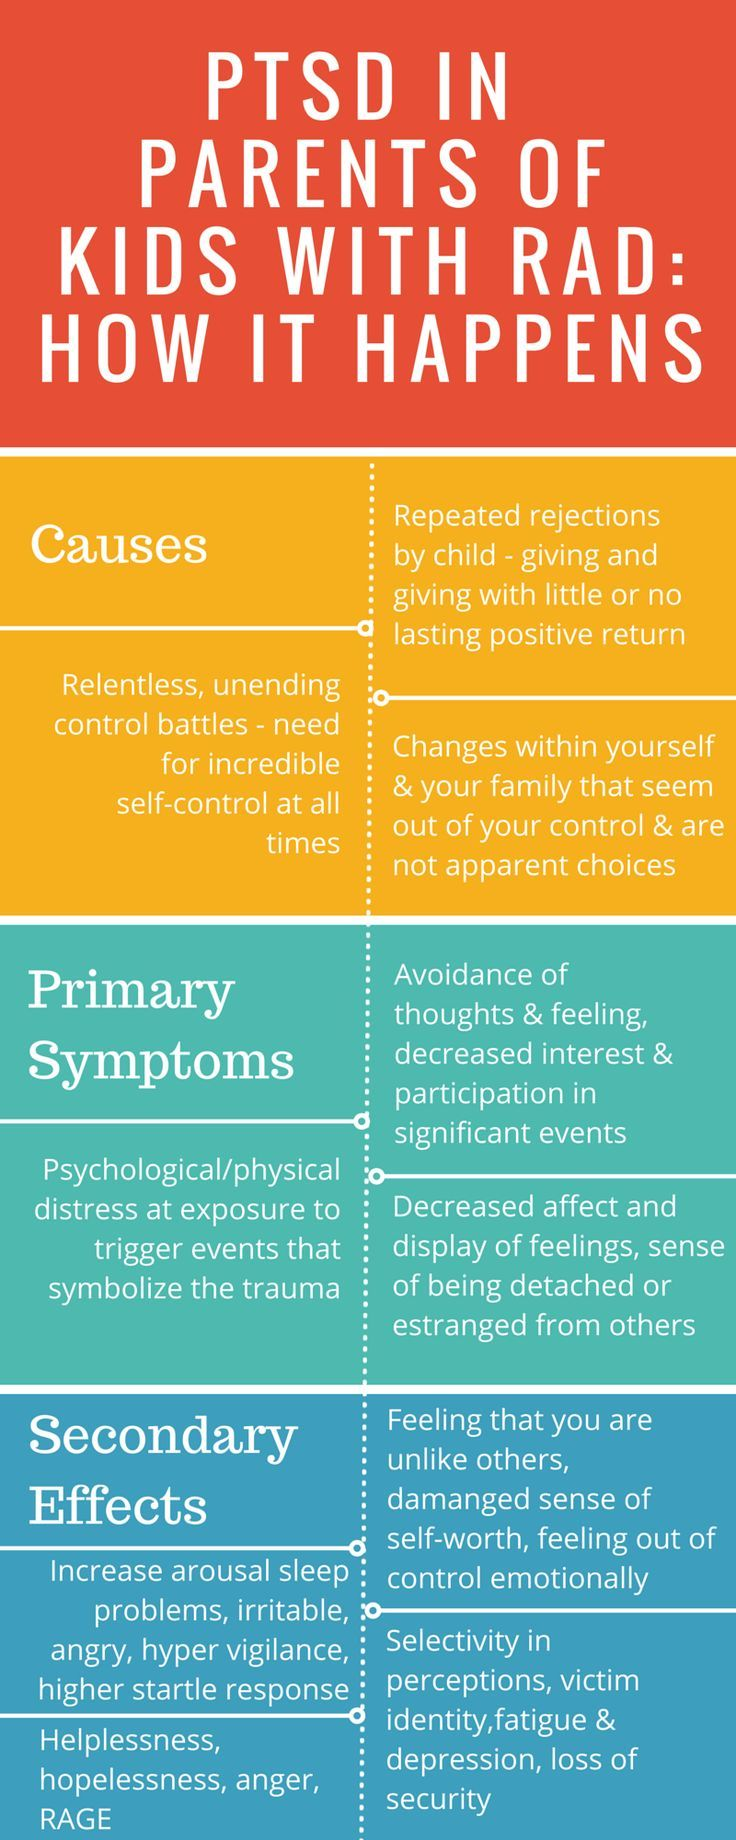 Workbooks tf cbt workbook for children : 97 best images about TFCBT on Pinterest | Anxiety, Ptsd and Children